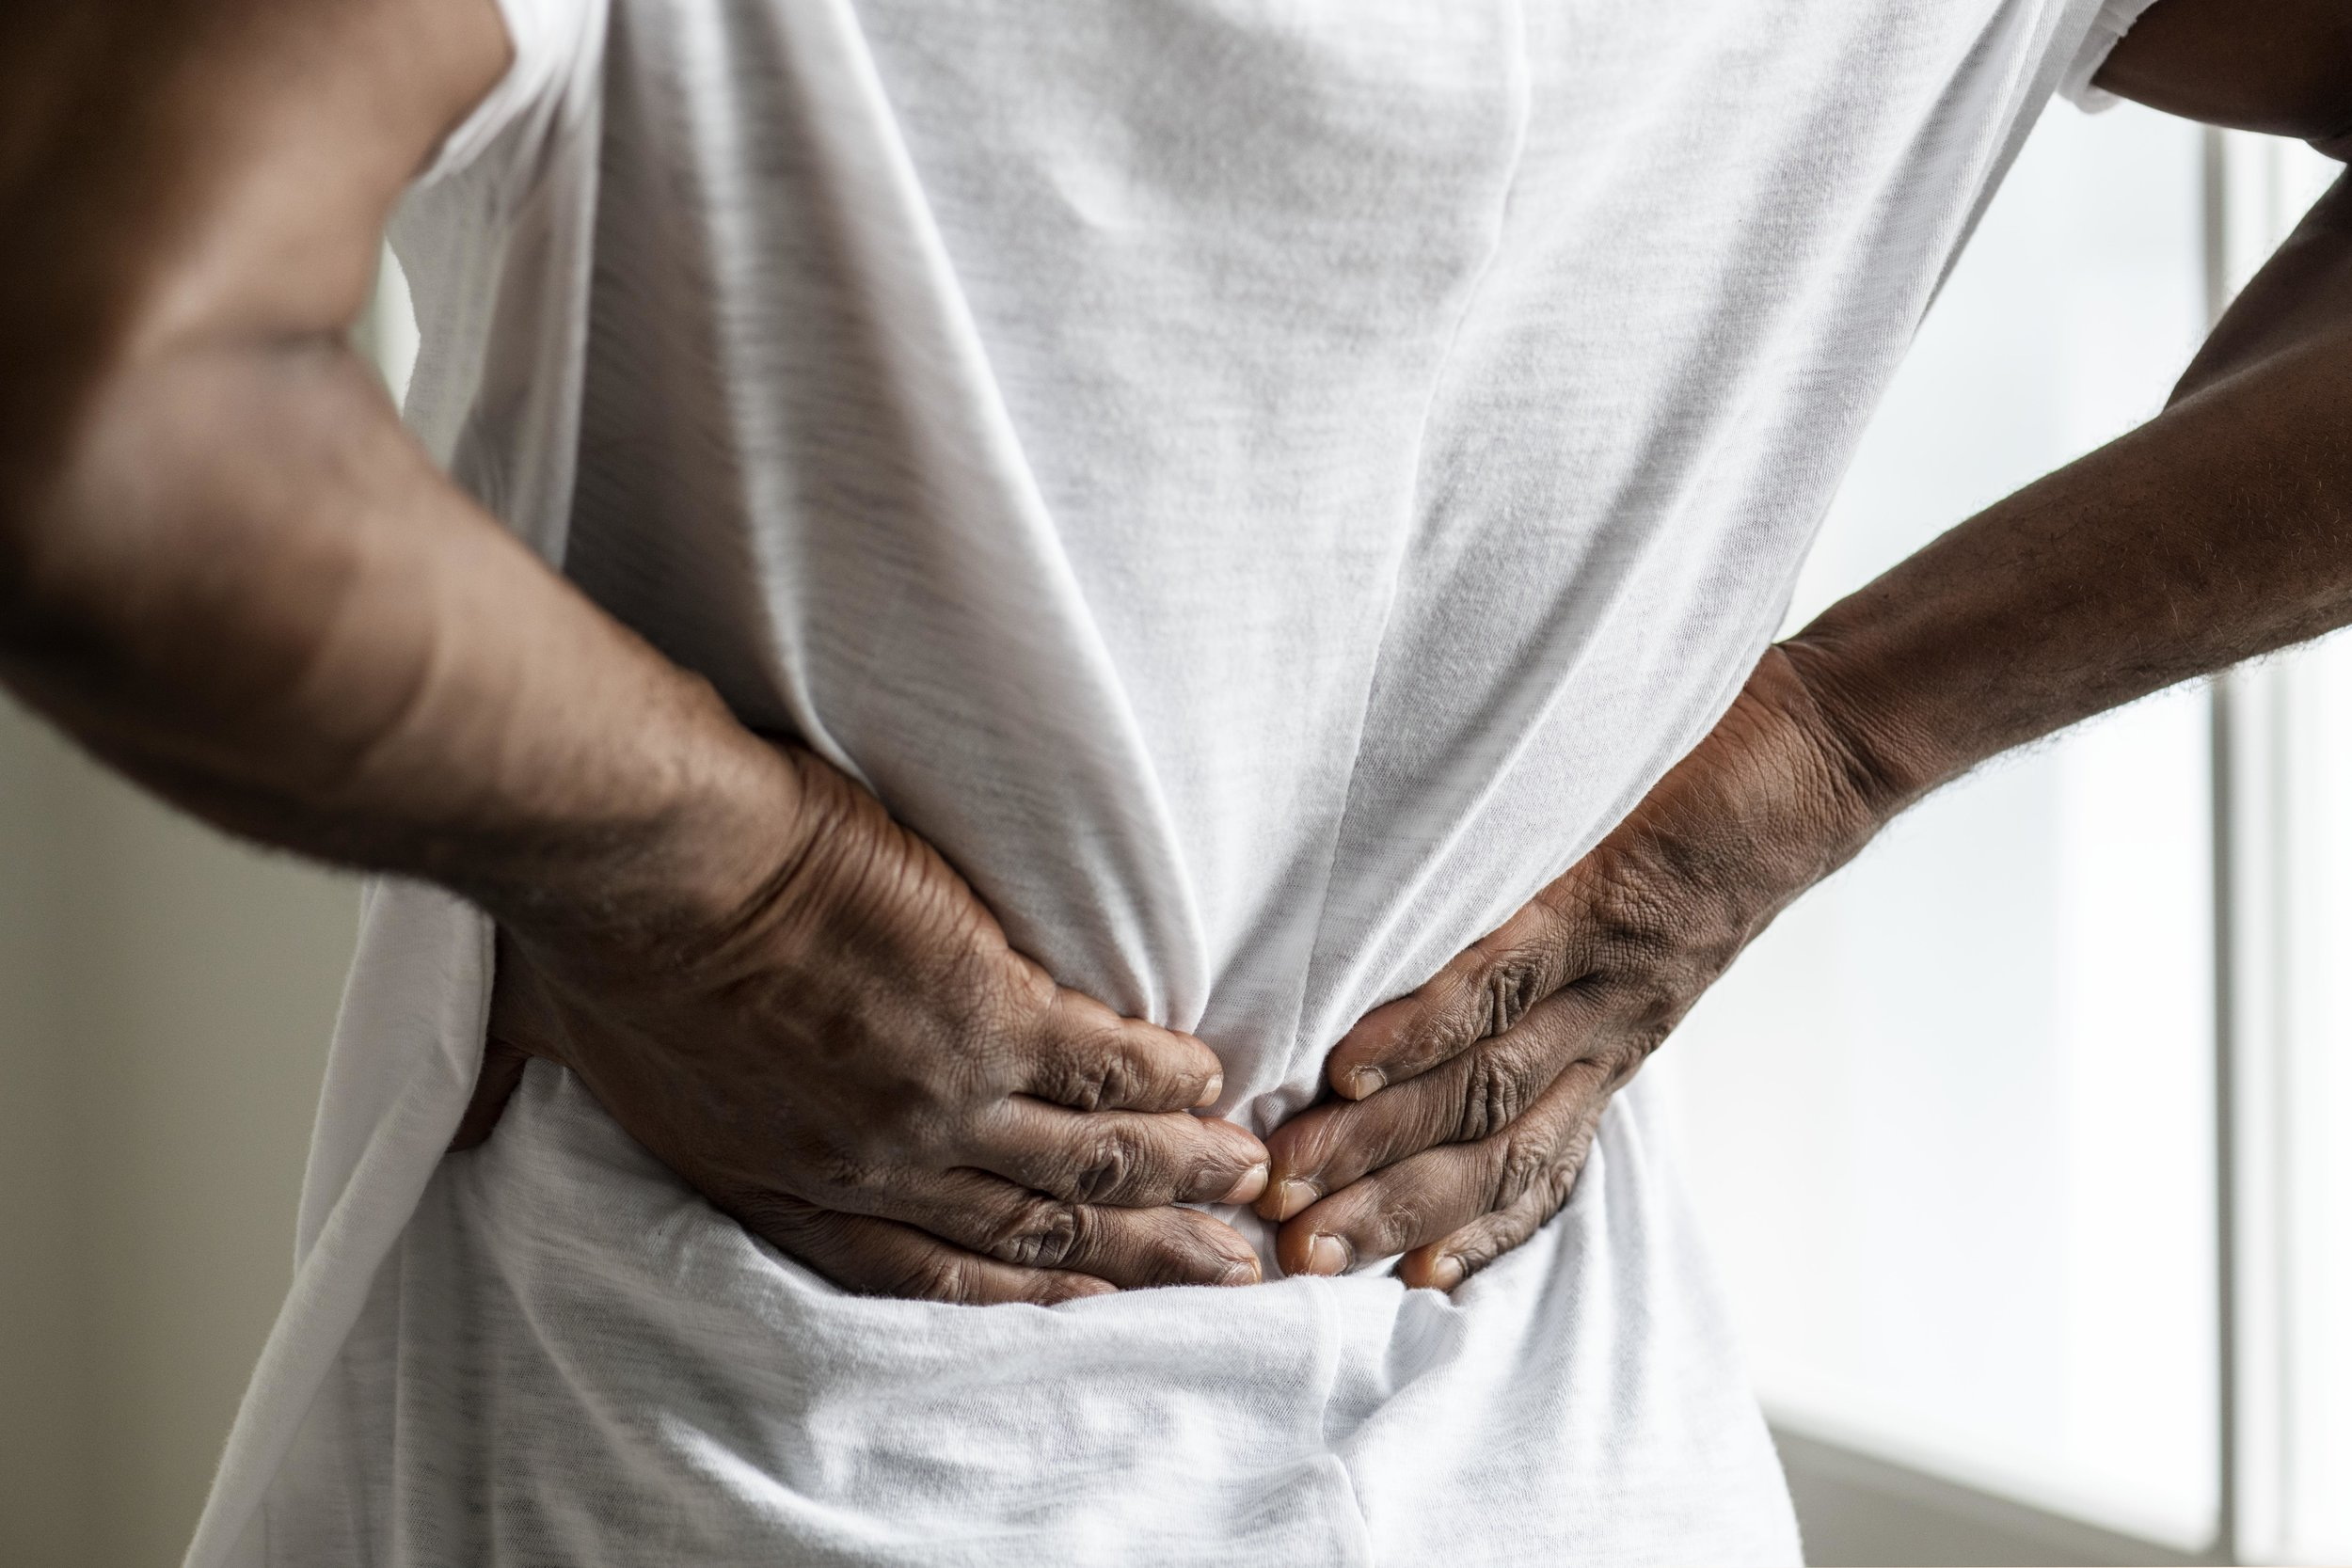 Muscle and body aches